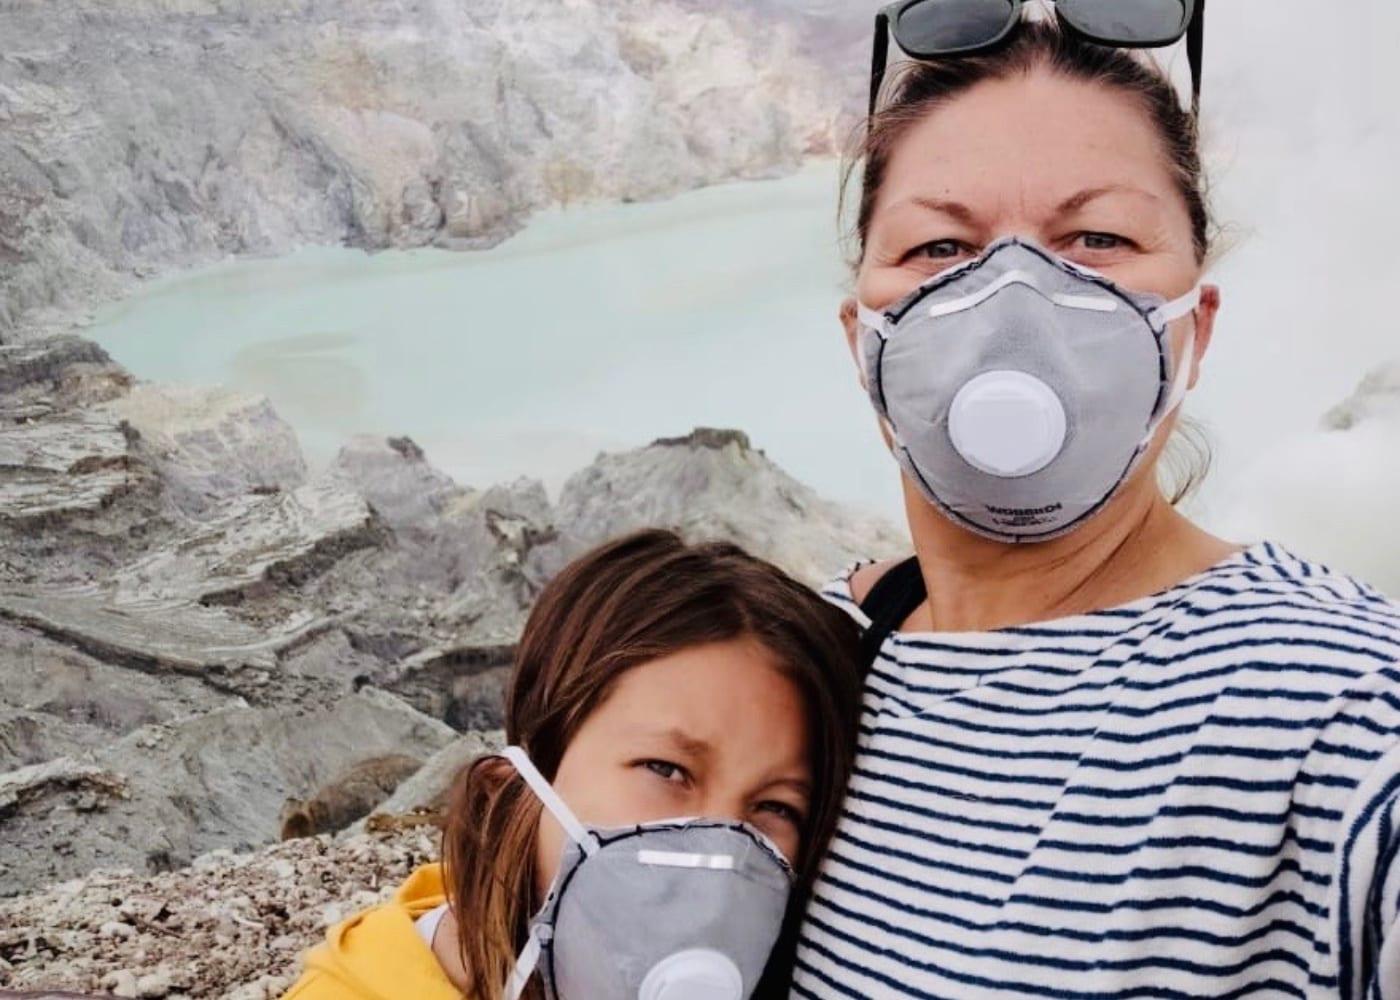 Holiday with a difference: this mum hiked up Kawah Ijen, an active volcano in Indonesia